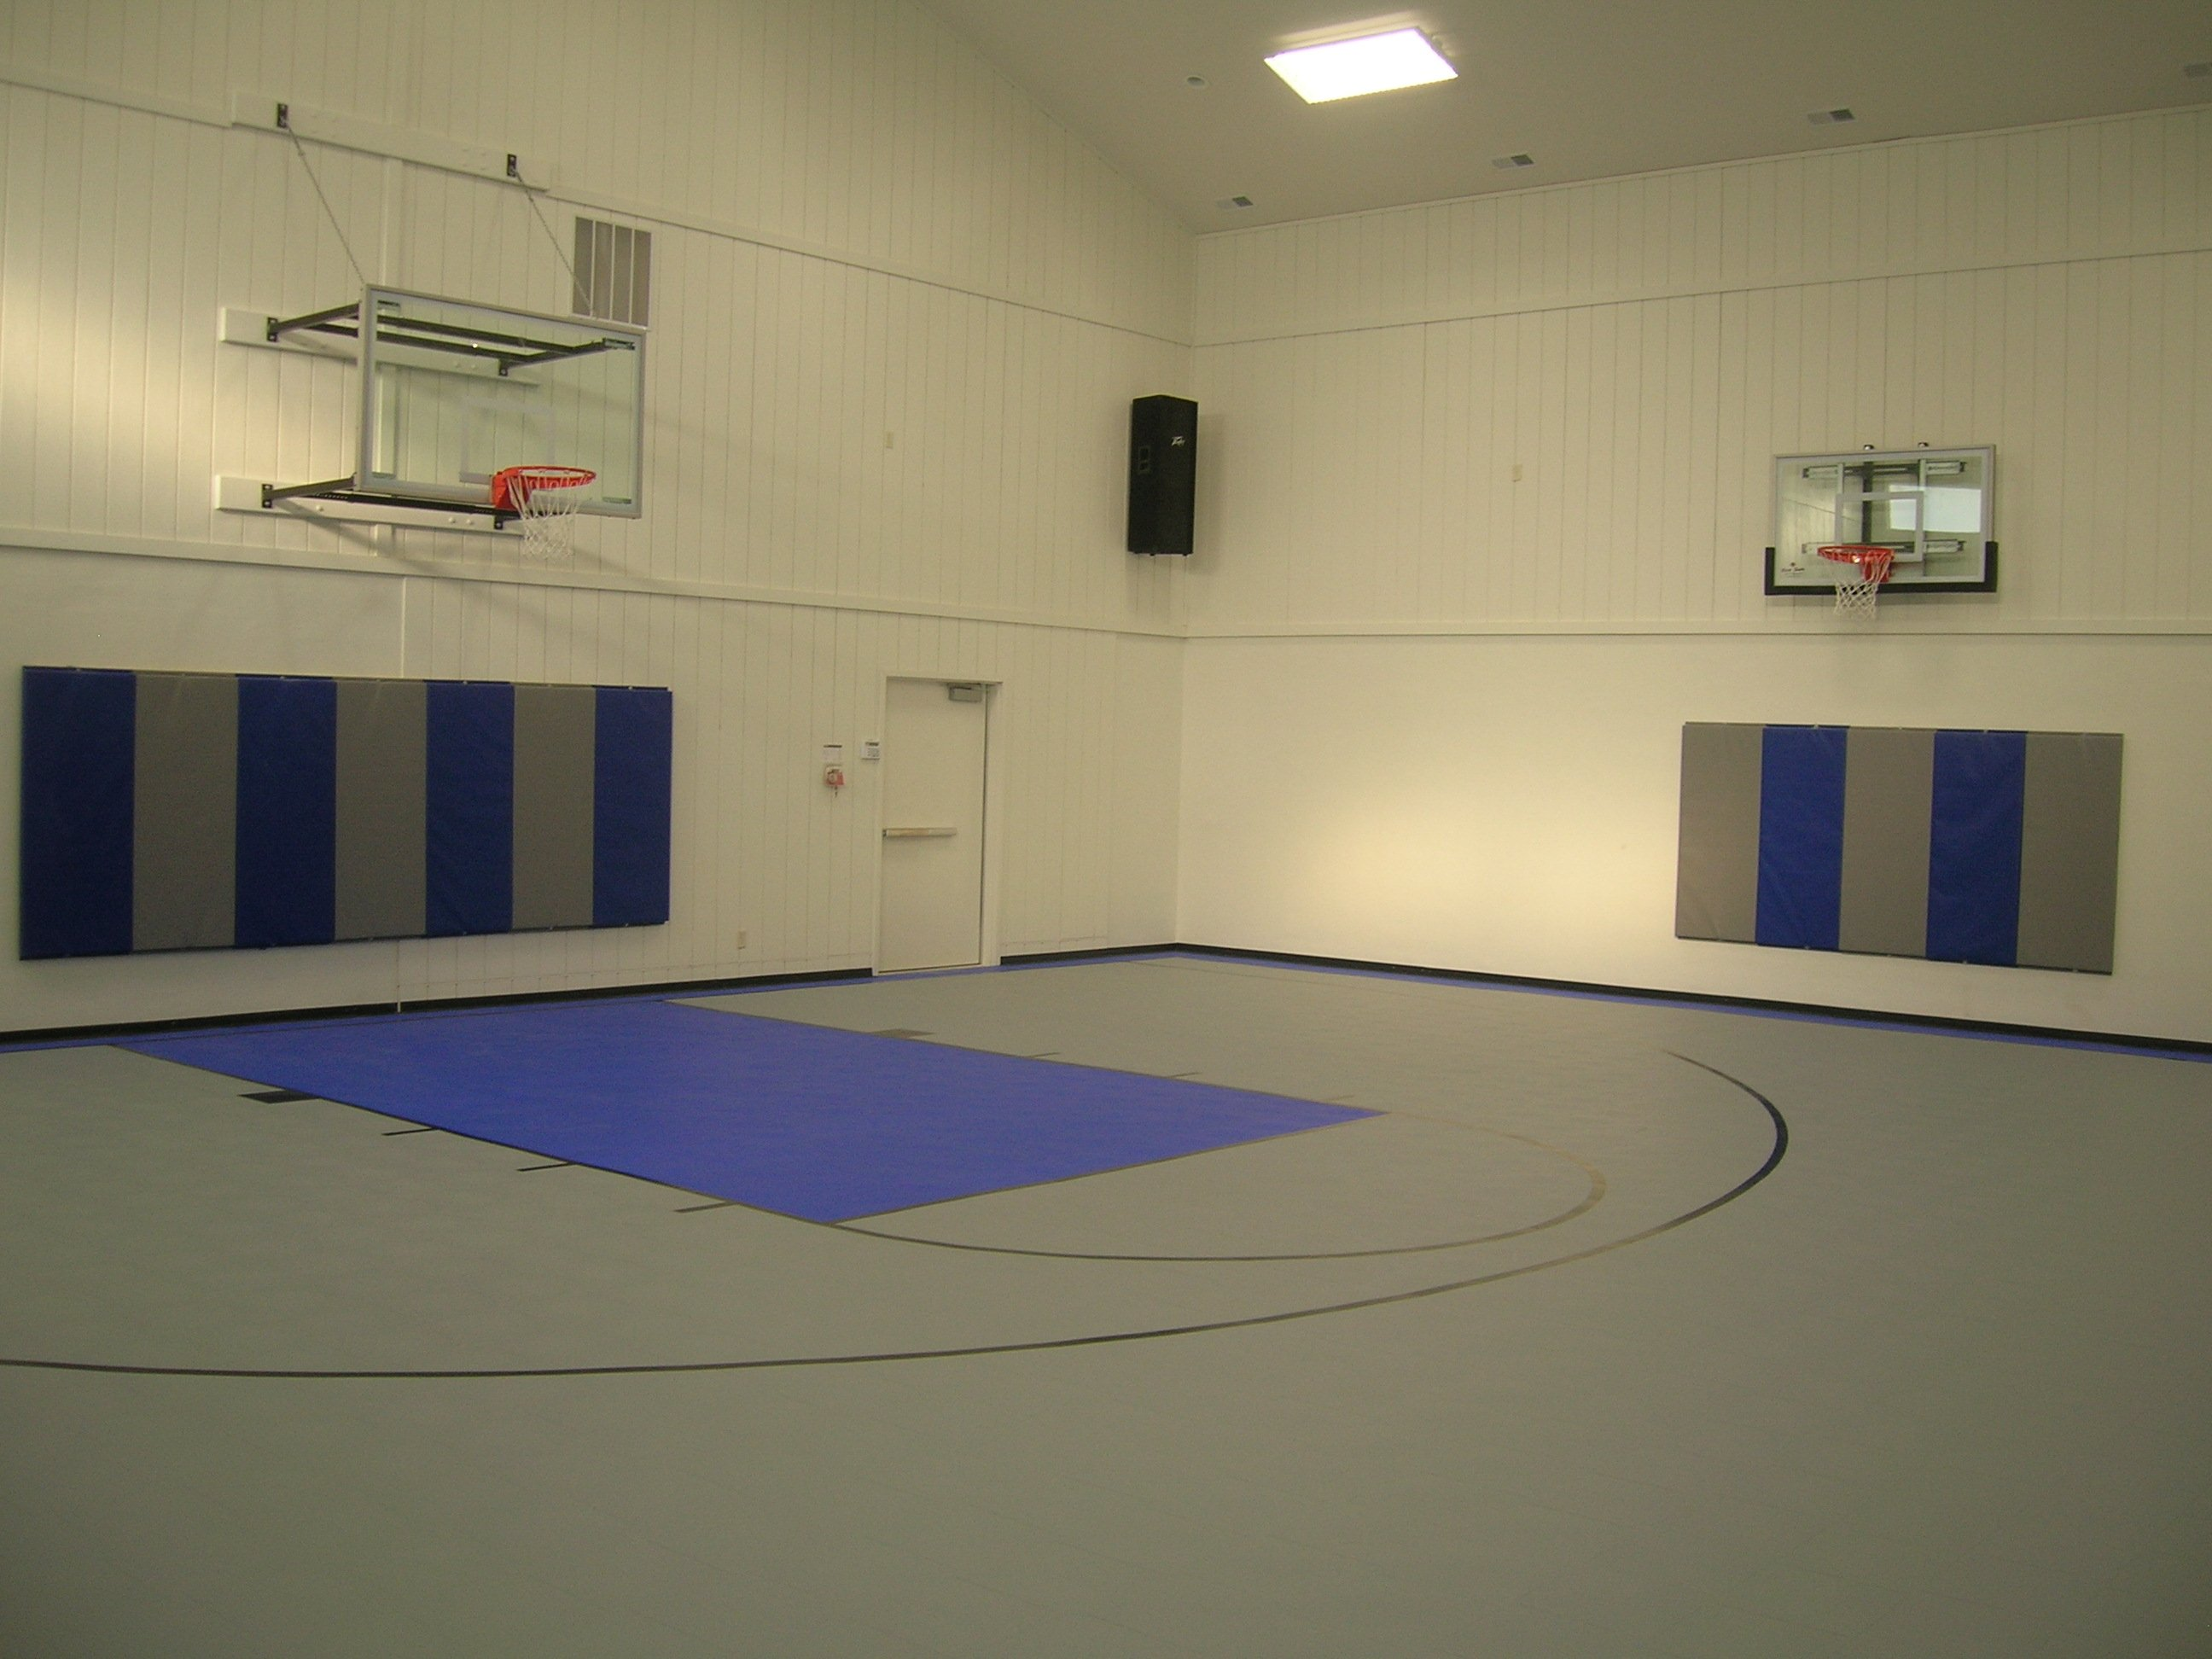 Indoor athletic flooring kcr enterprises llc for Basketball court at home